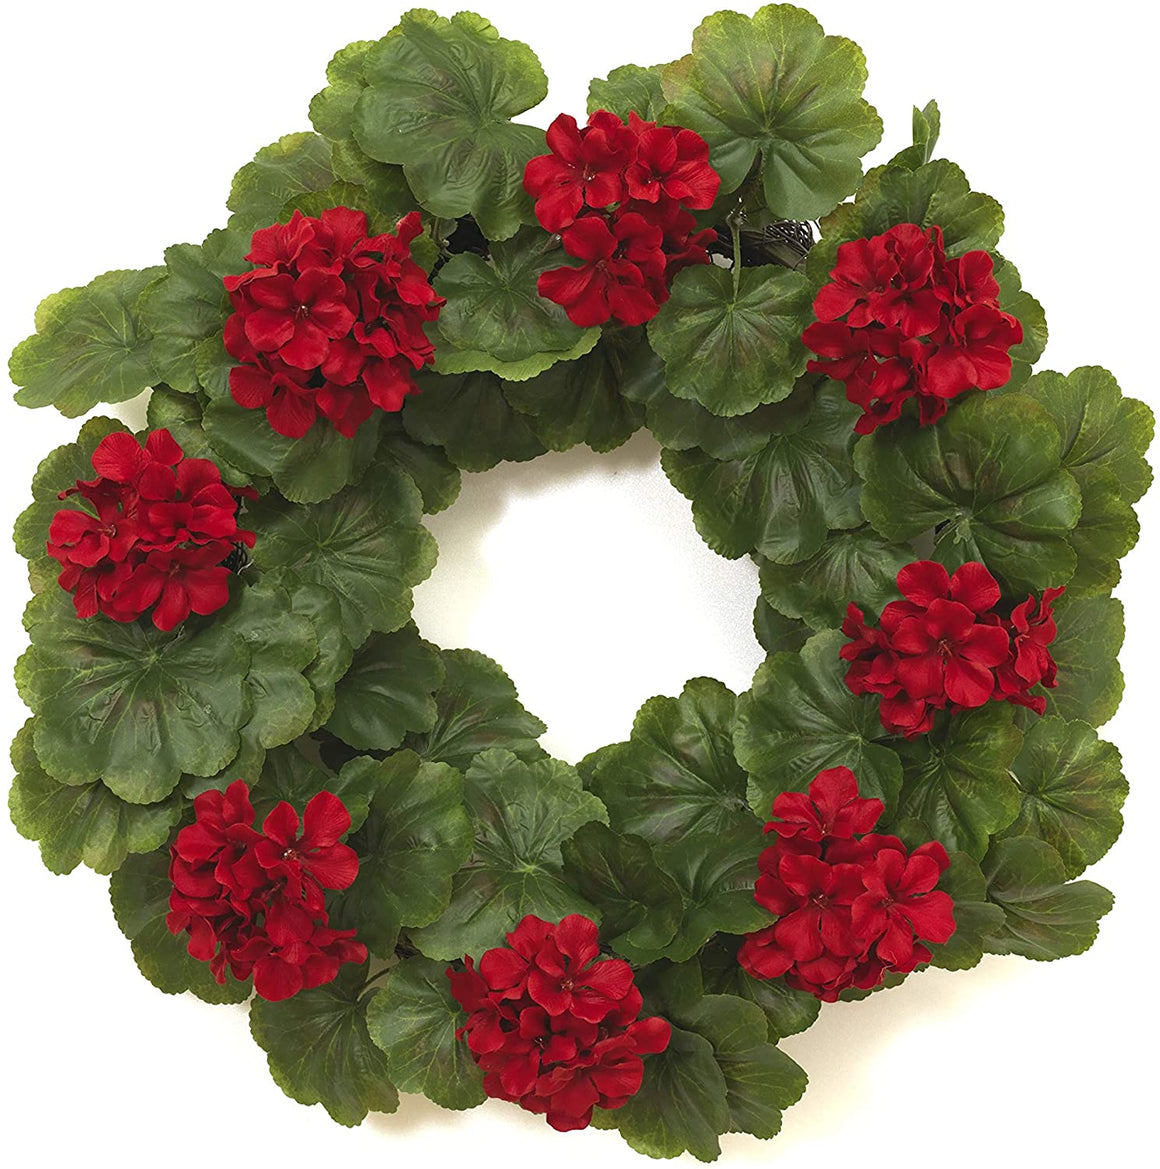 GER 20 Inch Artificial Red Geranium Wreath, Front Door Wreath